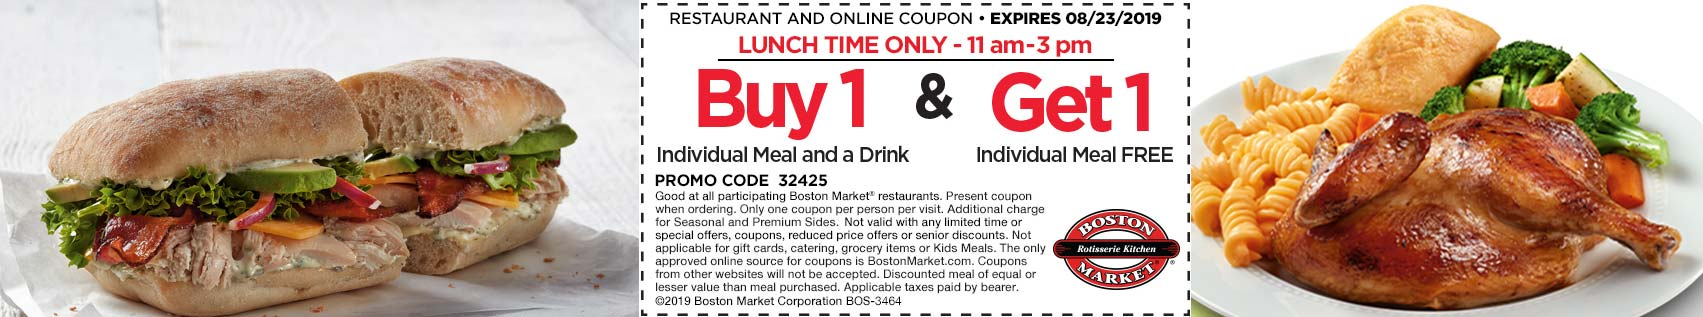 BostonMarket.com Promo Coupon Second lunch meal free at Boston Market